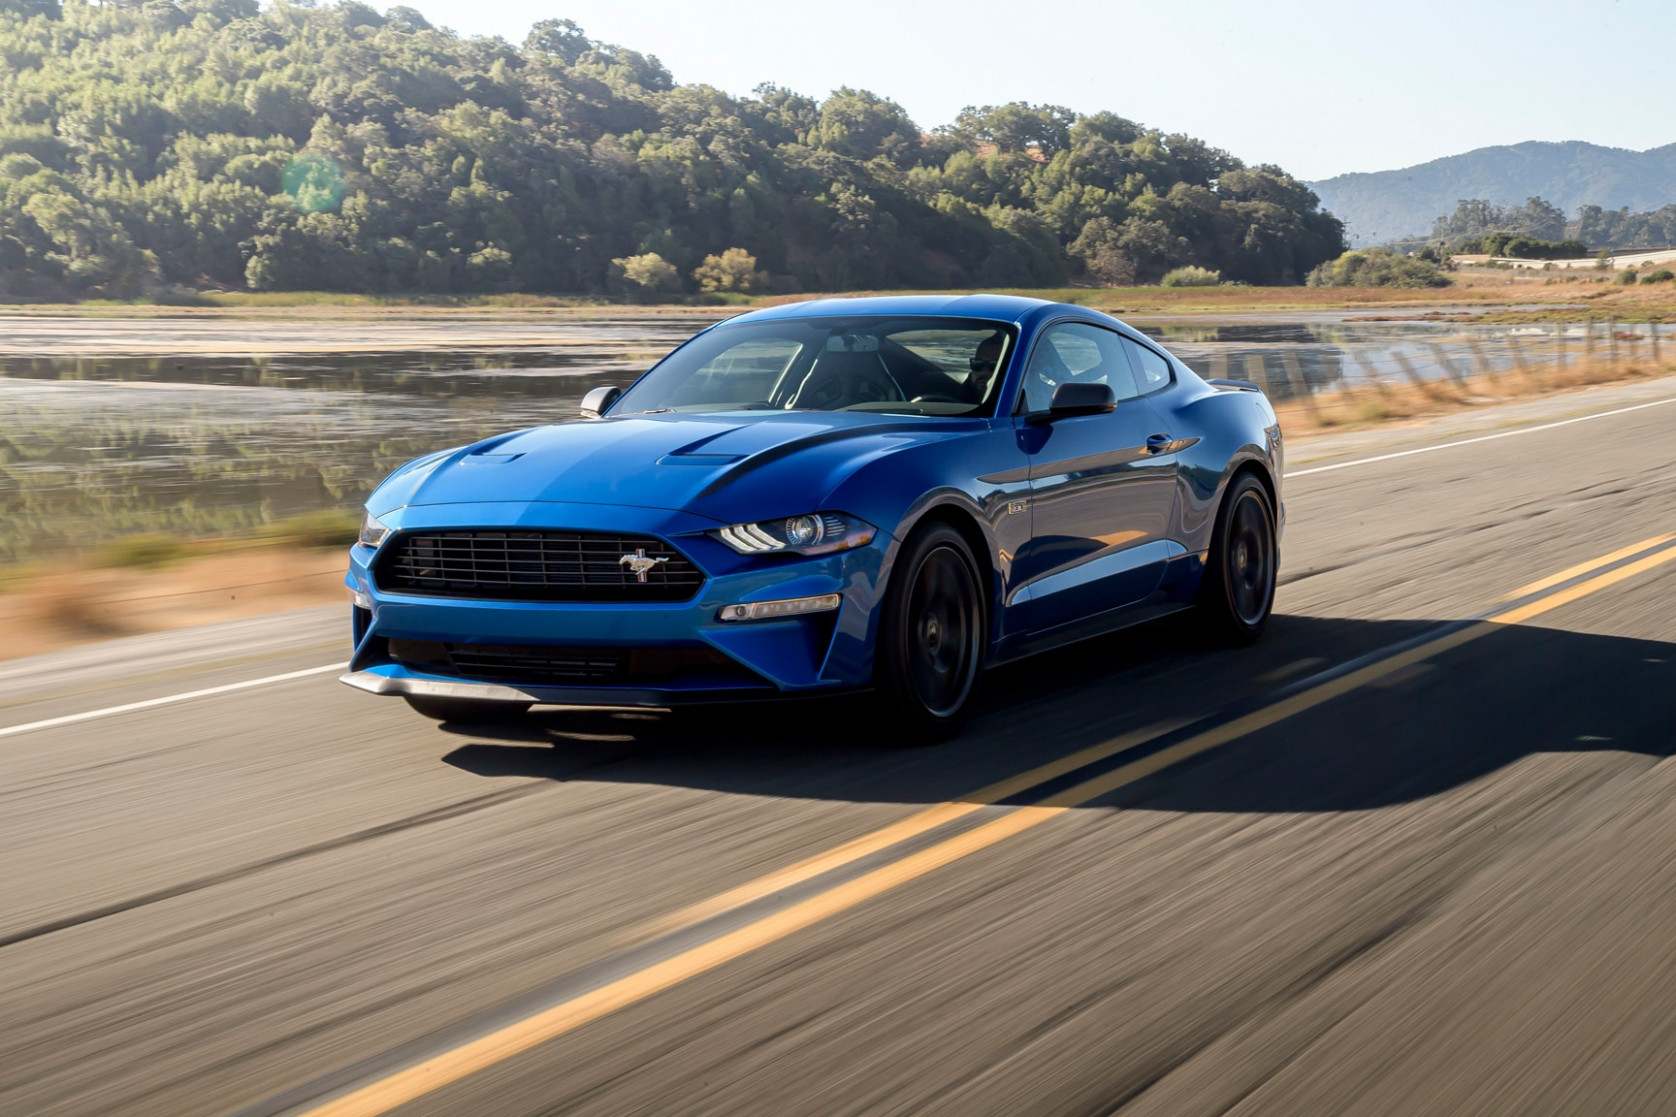 8 Ford Mustang Buyer's Guide: Reviews, Specs, Comparisons